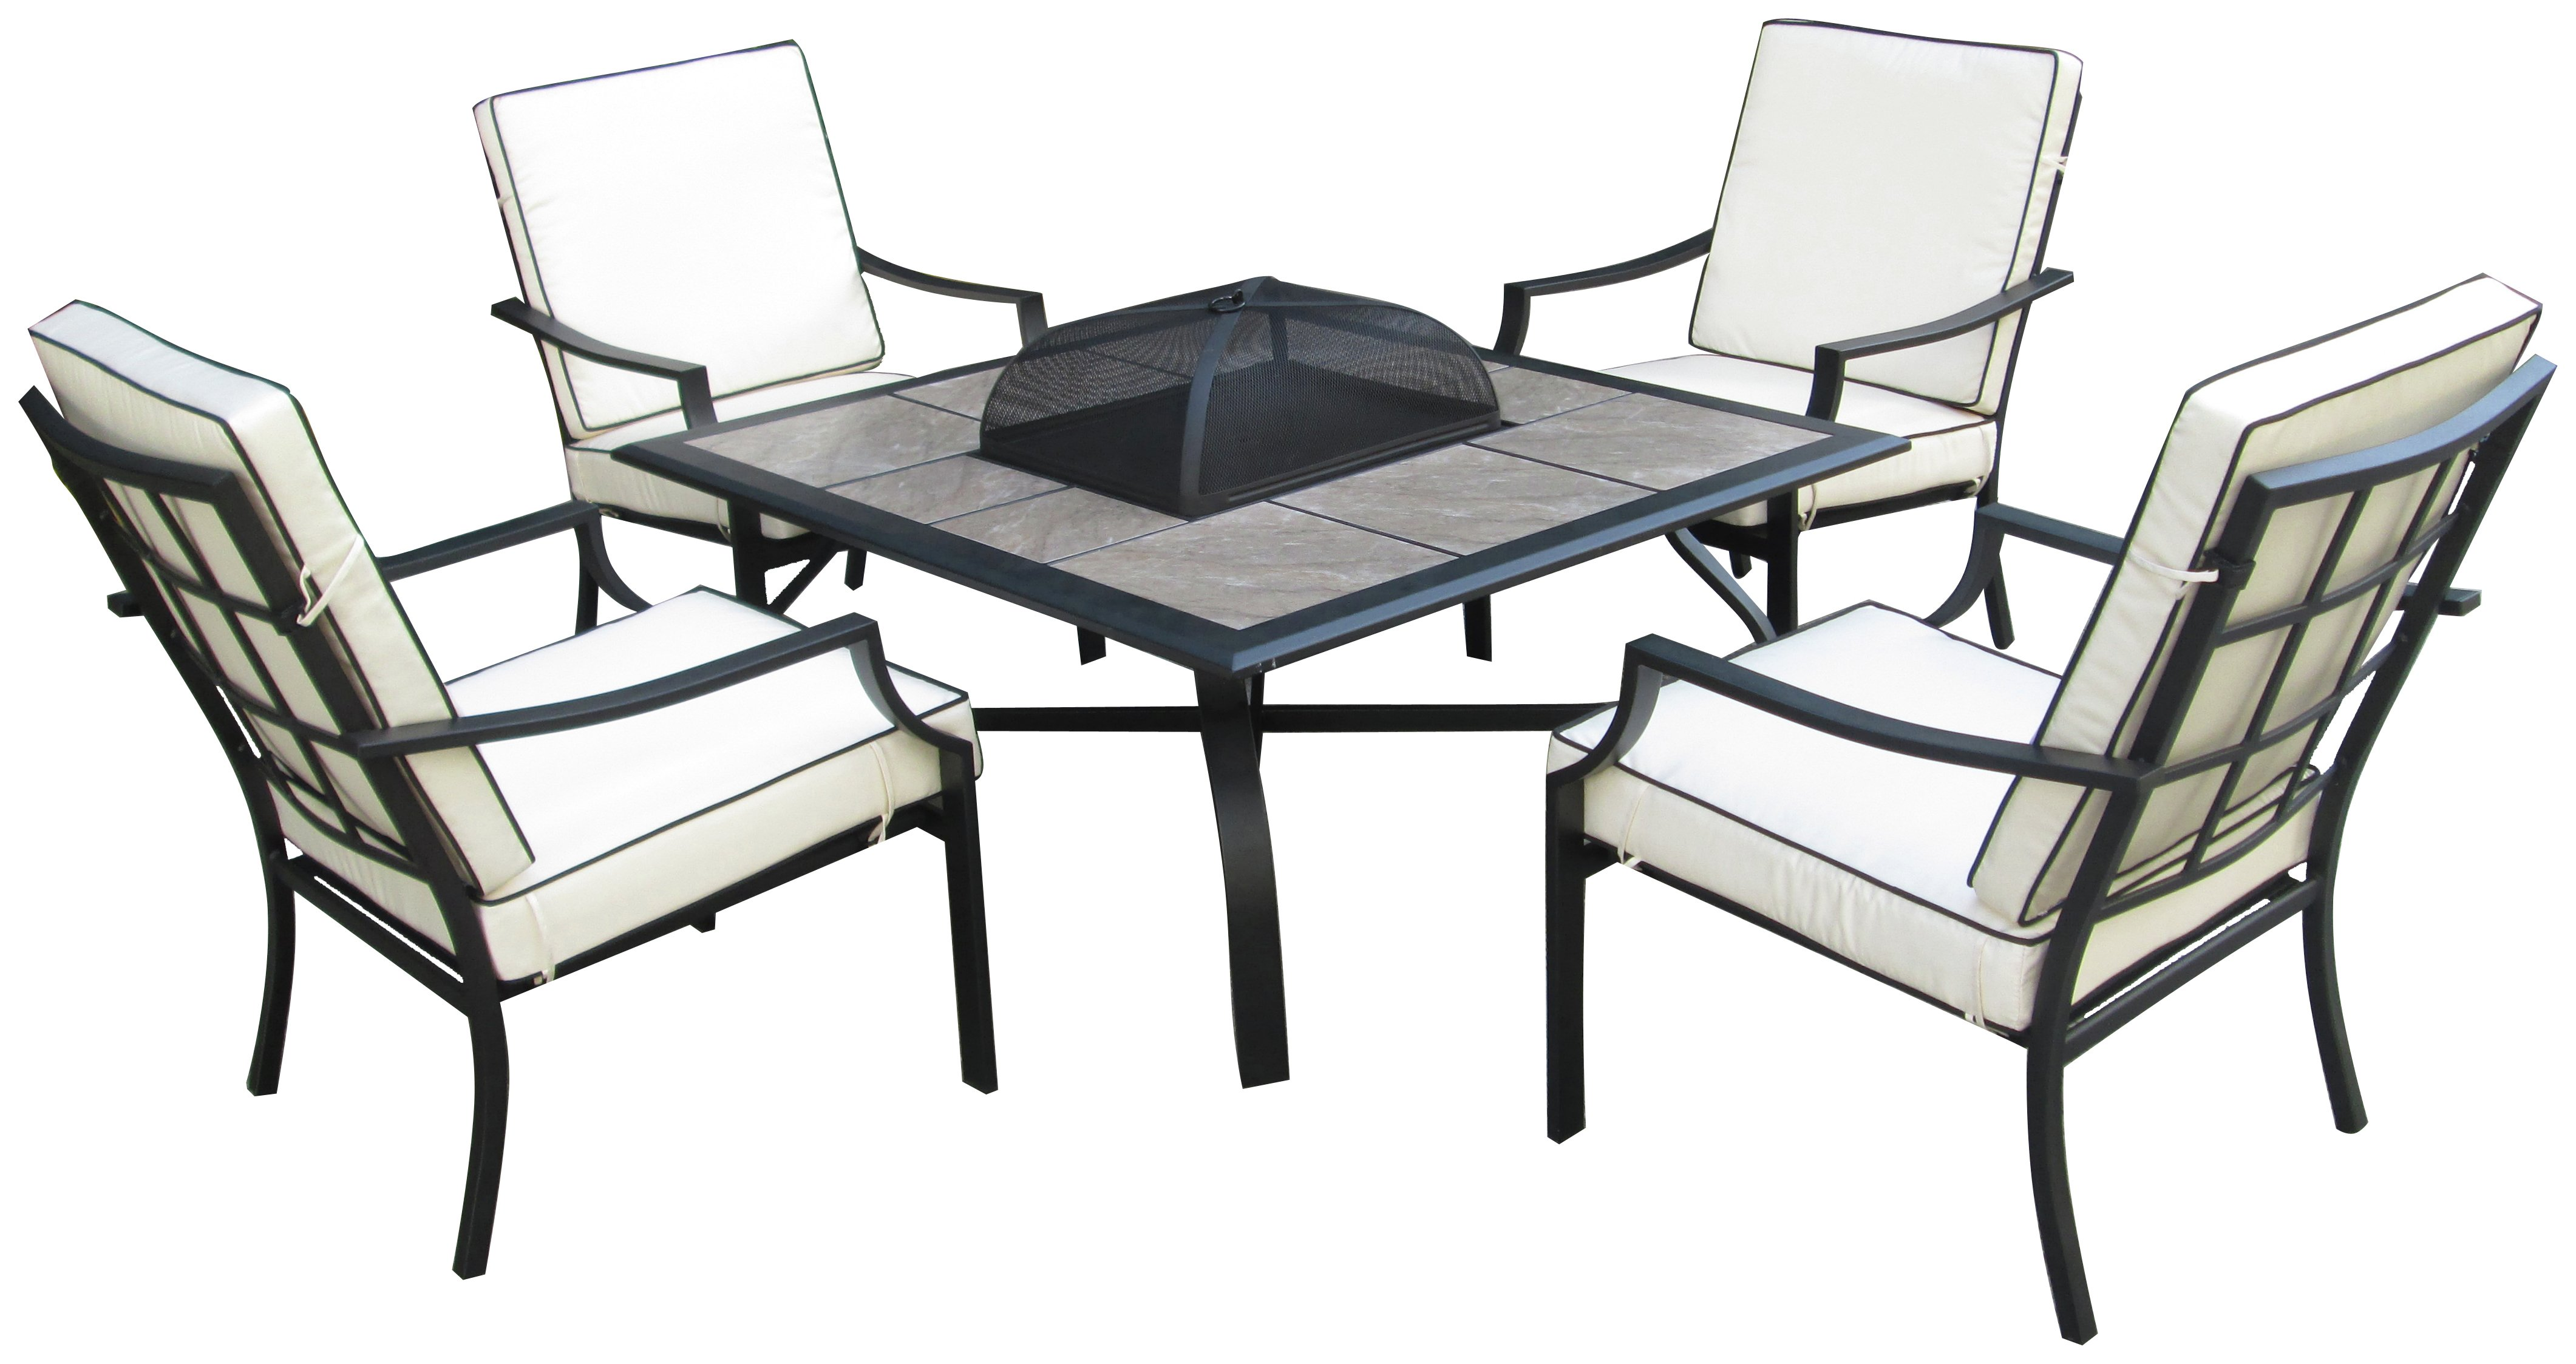 Buy Collection Barcelona 4 Seater Fire Pit Table At Argos.co.uk   Your  Online Shop For Garden Table And Chair Sets, Garden Furniture, Home And  Garden.